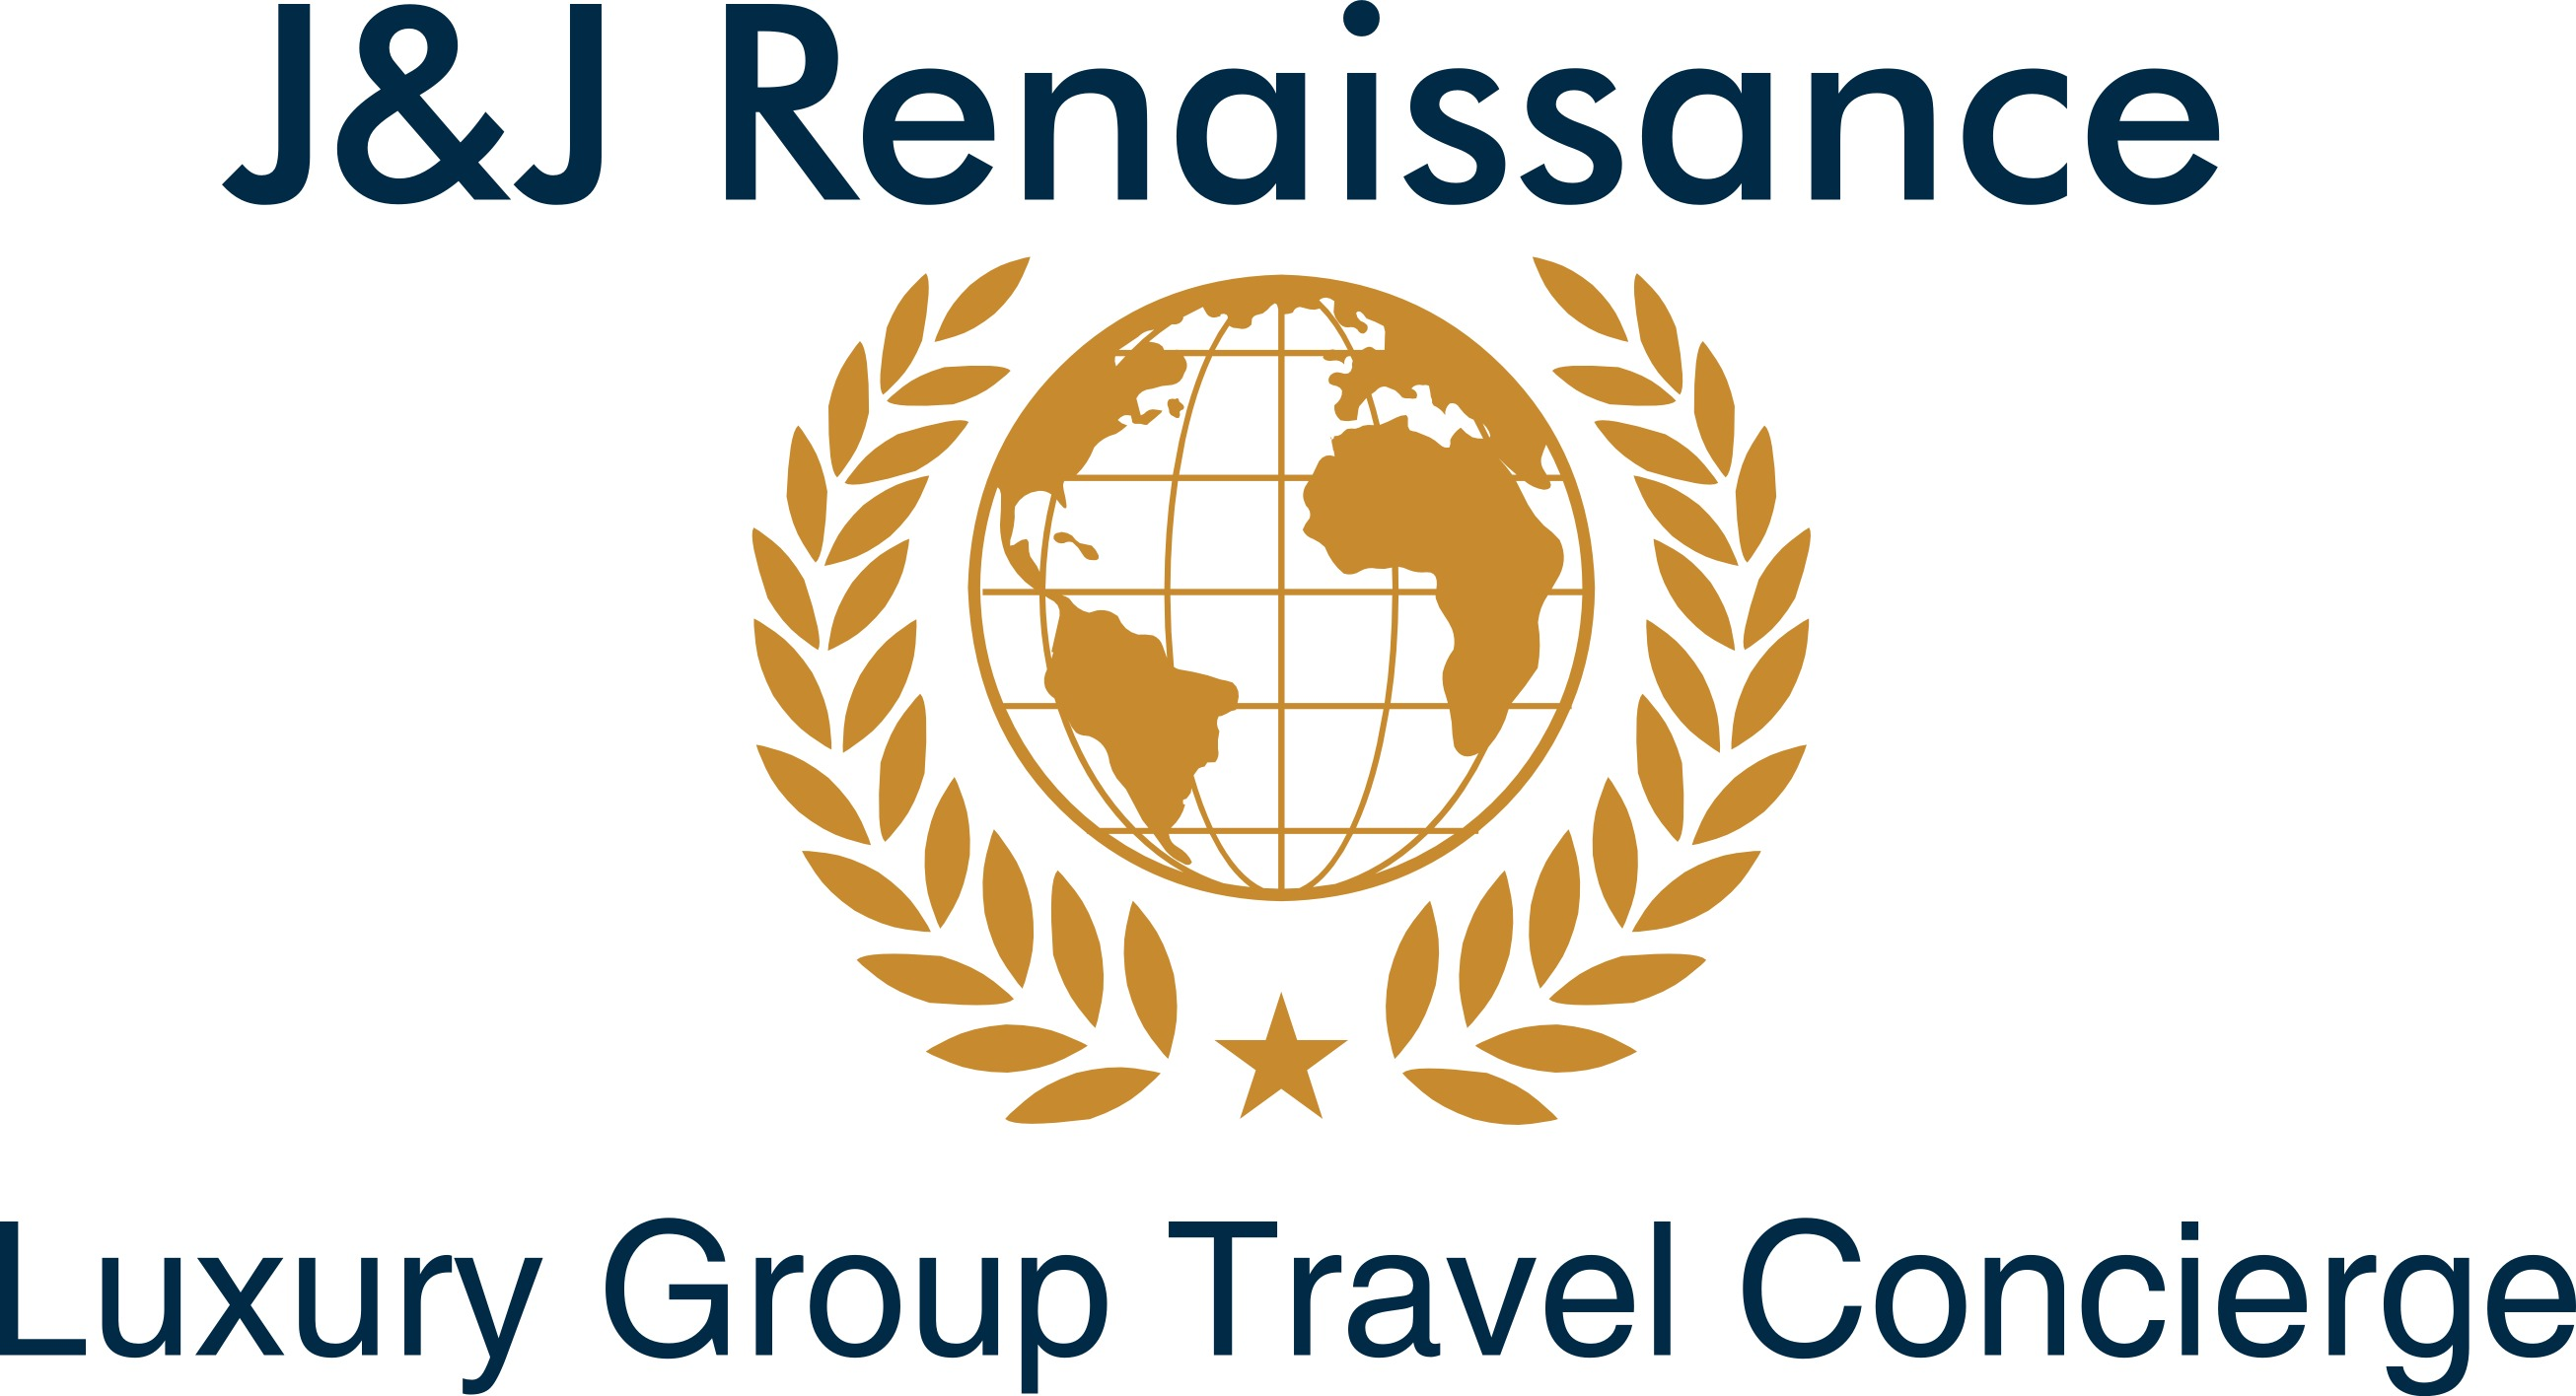 J & J Renaissance Luxury Group Travel Concierge